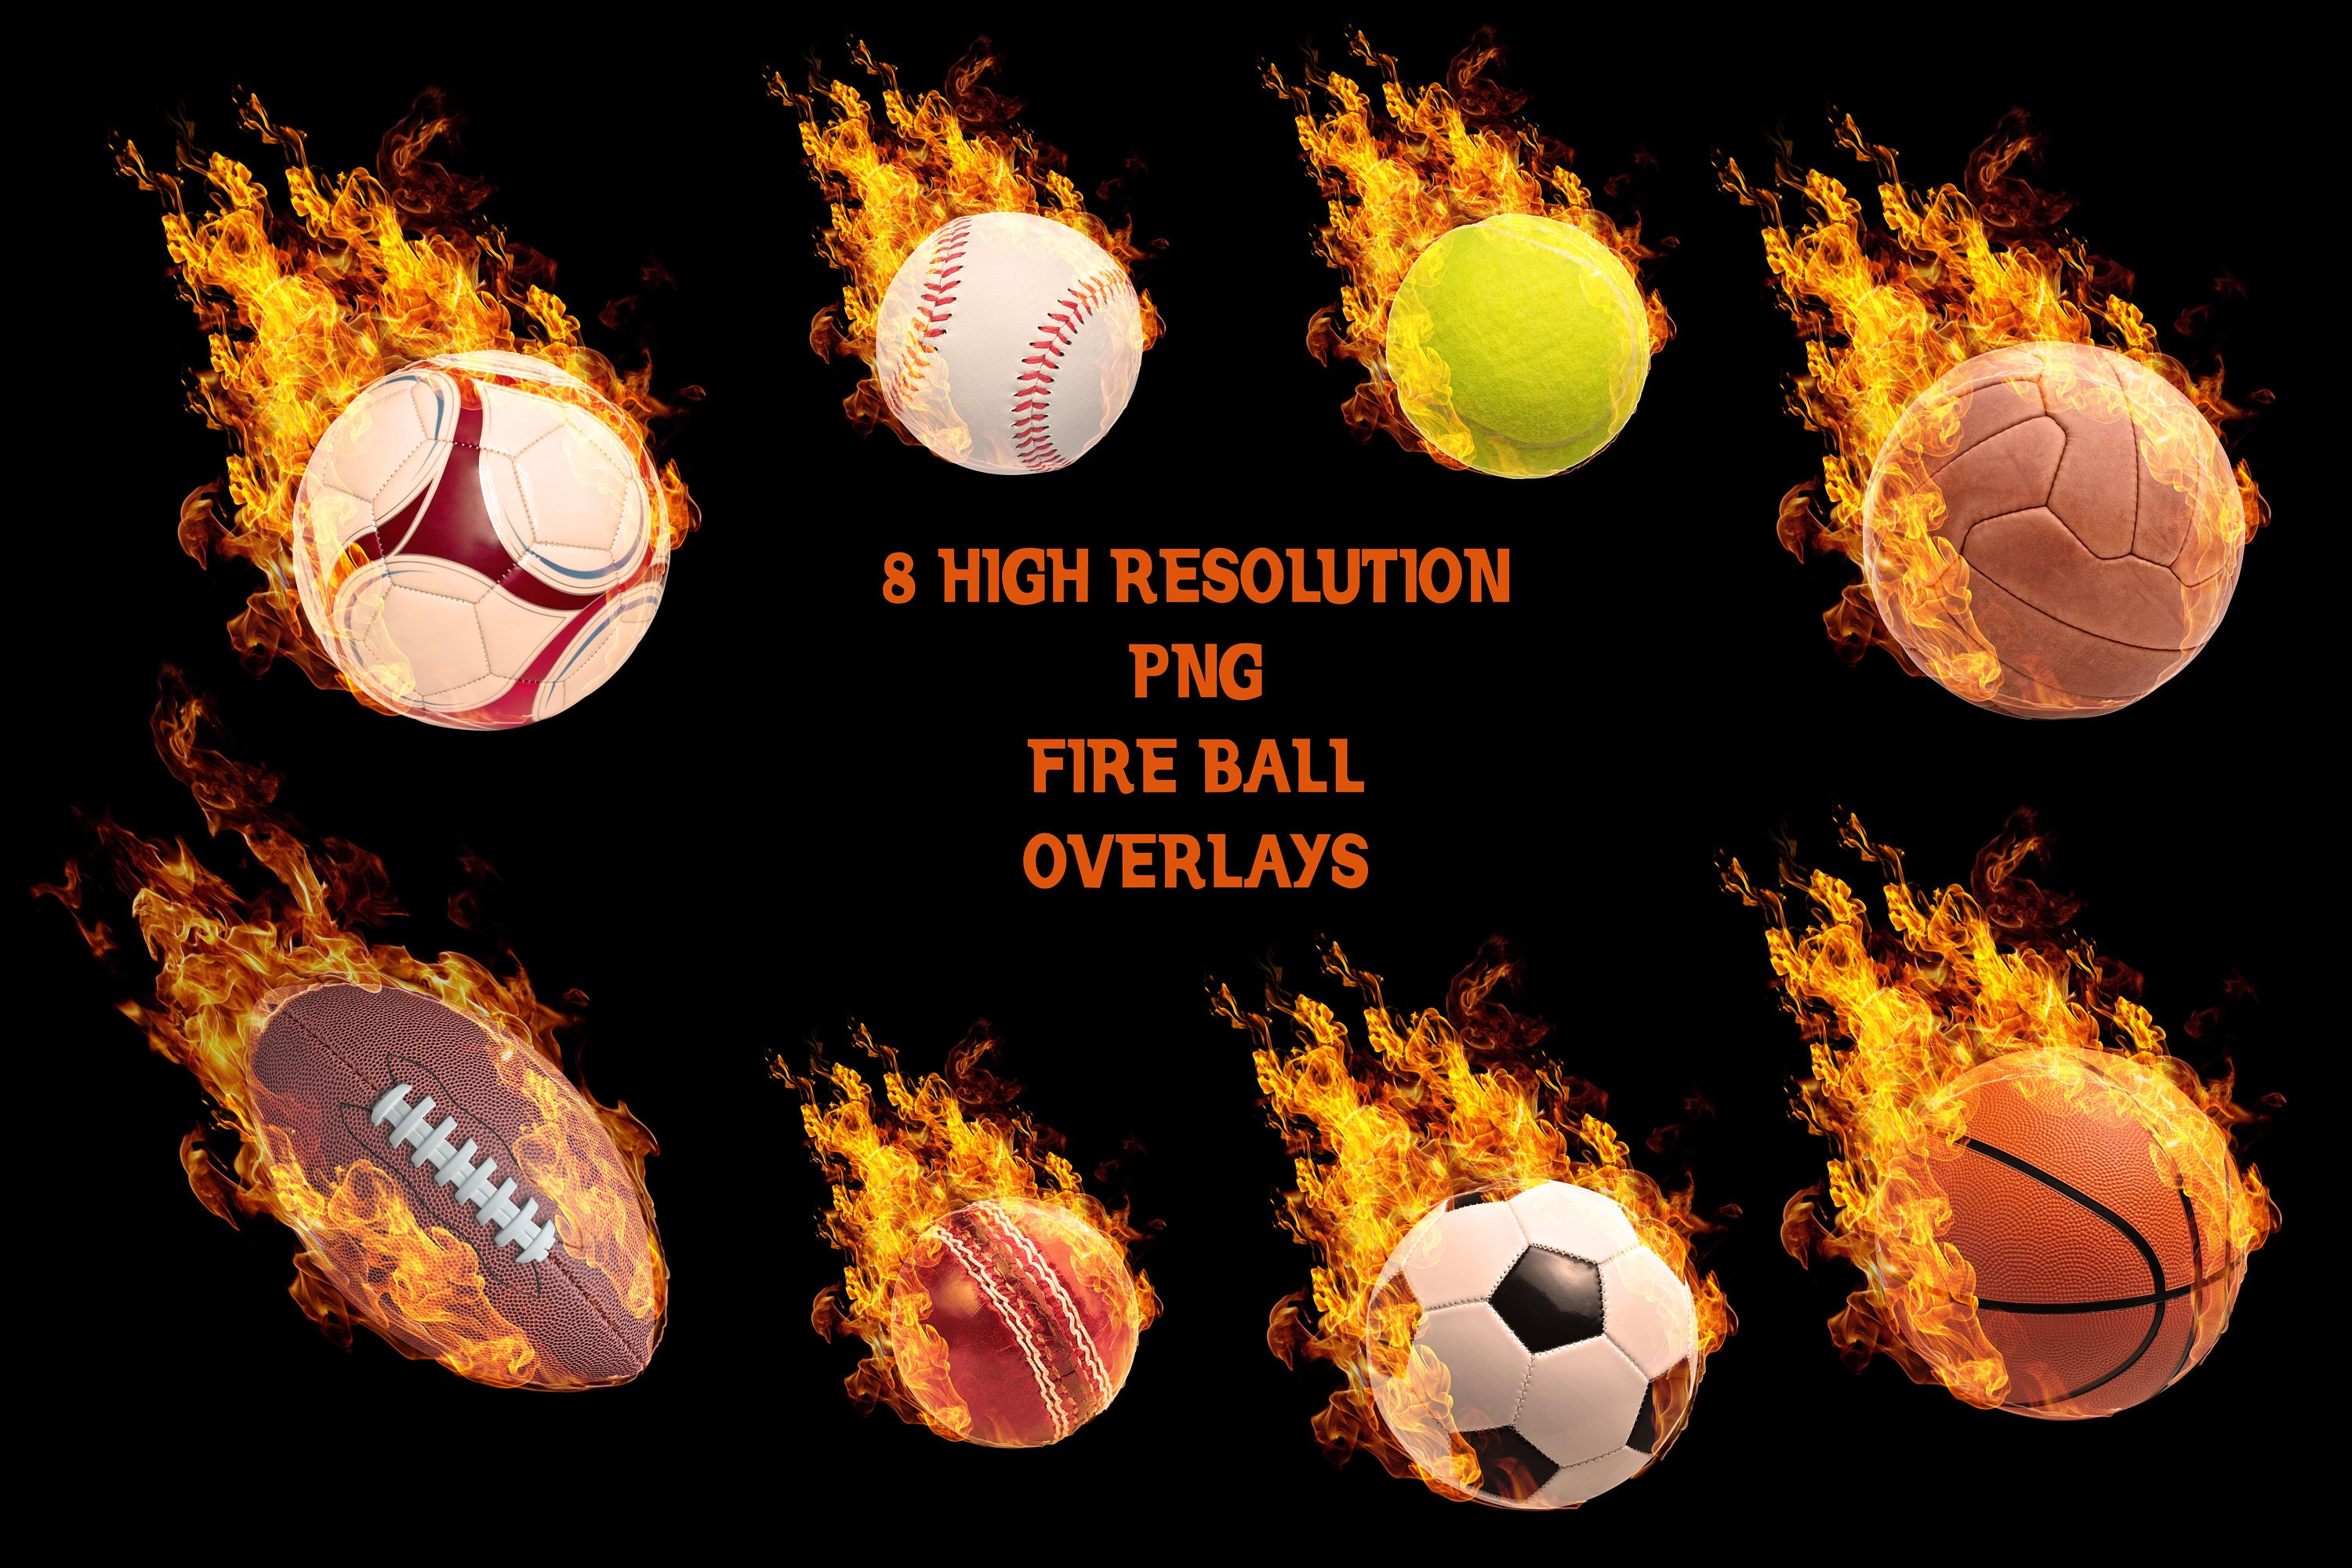 Sports Photo Overlays Digital .PNG Files for Sports Photography /& Quick Pages. FIREBALL Overlays Set 2   5 Photoshop Design